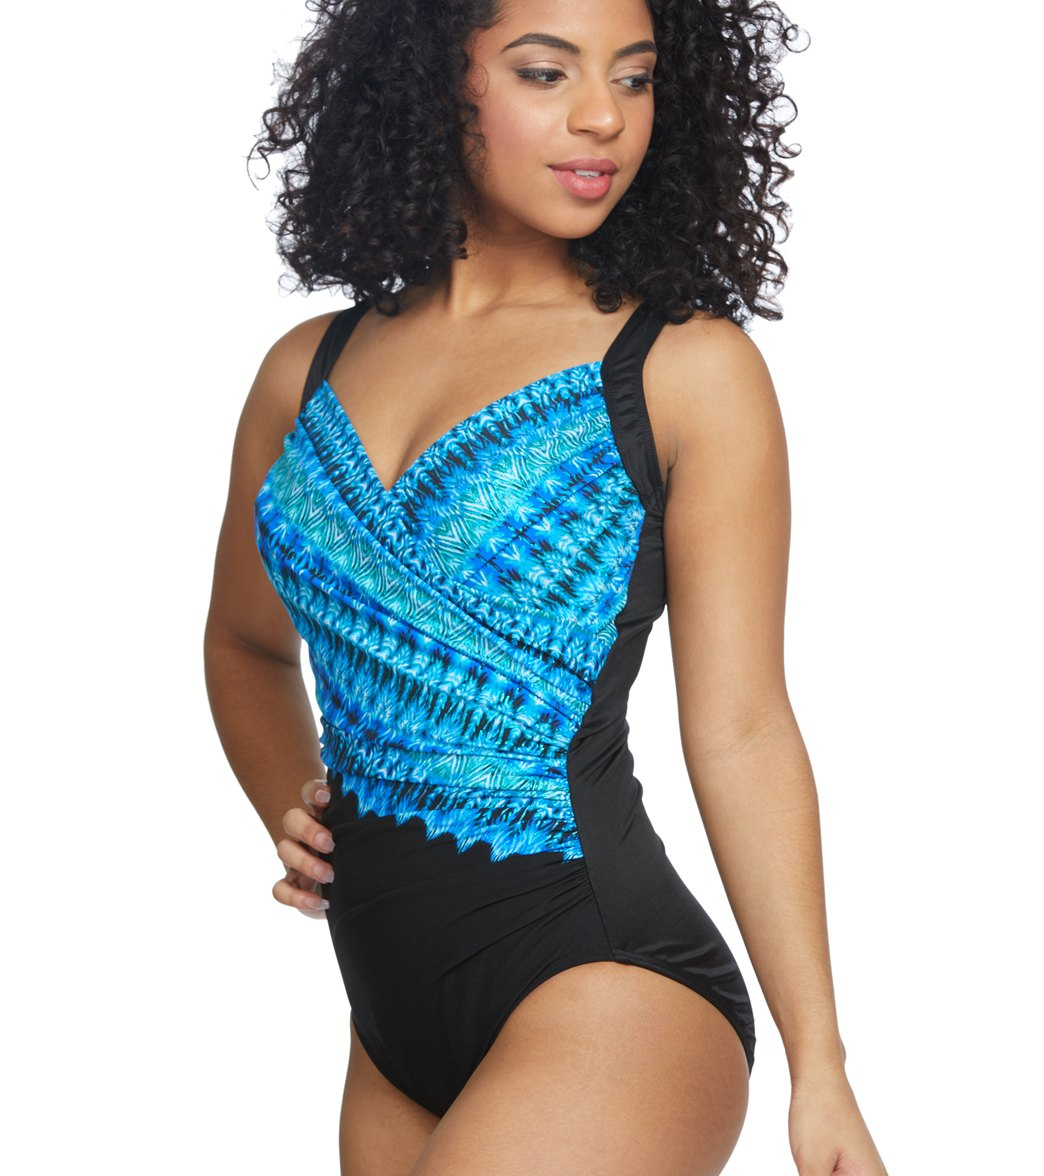 119a987e025ae Miraclesuit Cabana Chic Sanibel One Piece Swimsuit (DD Cup) at ...